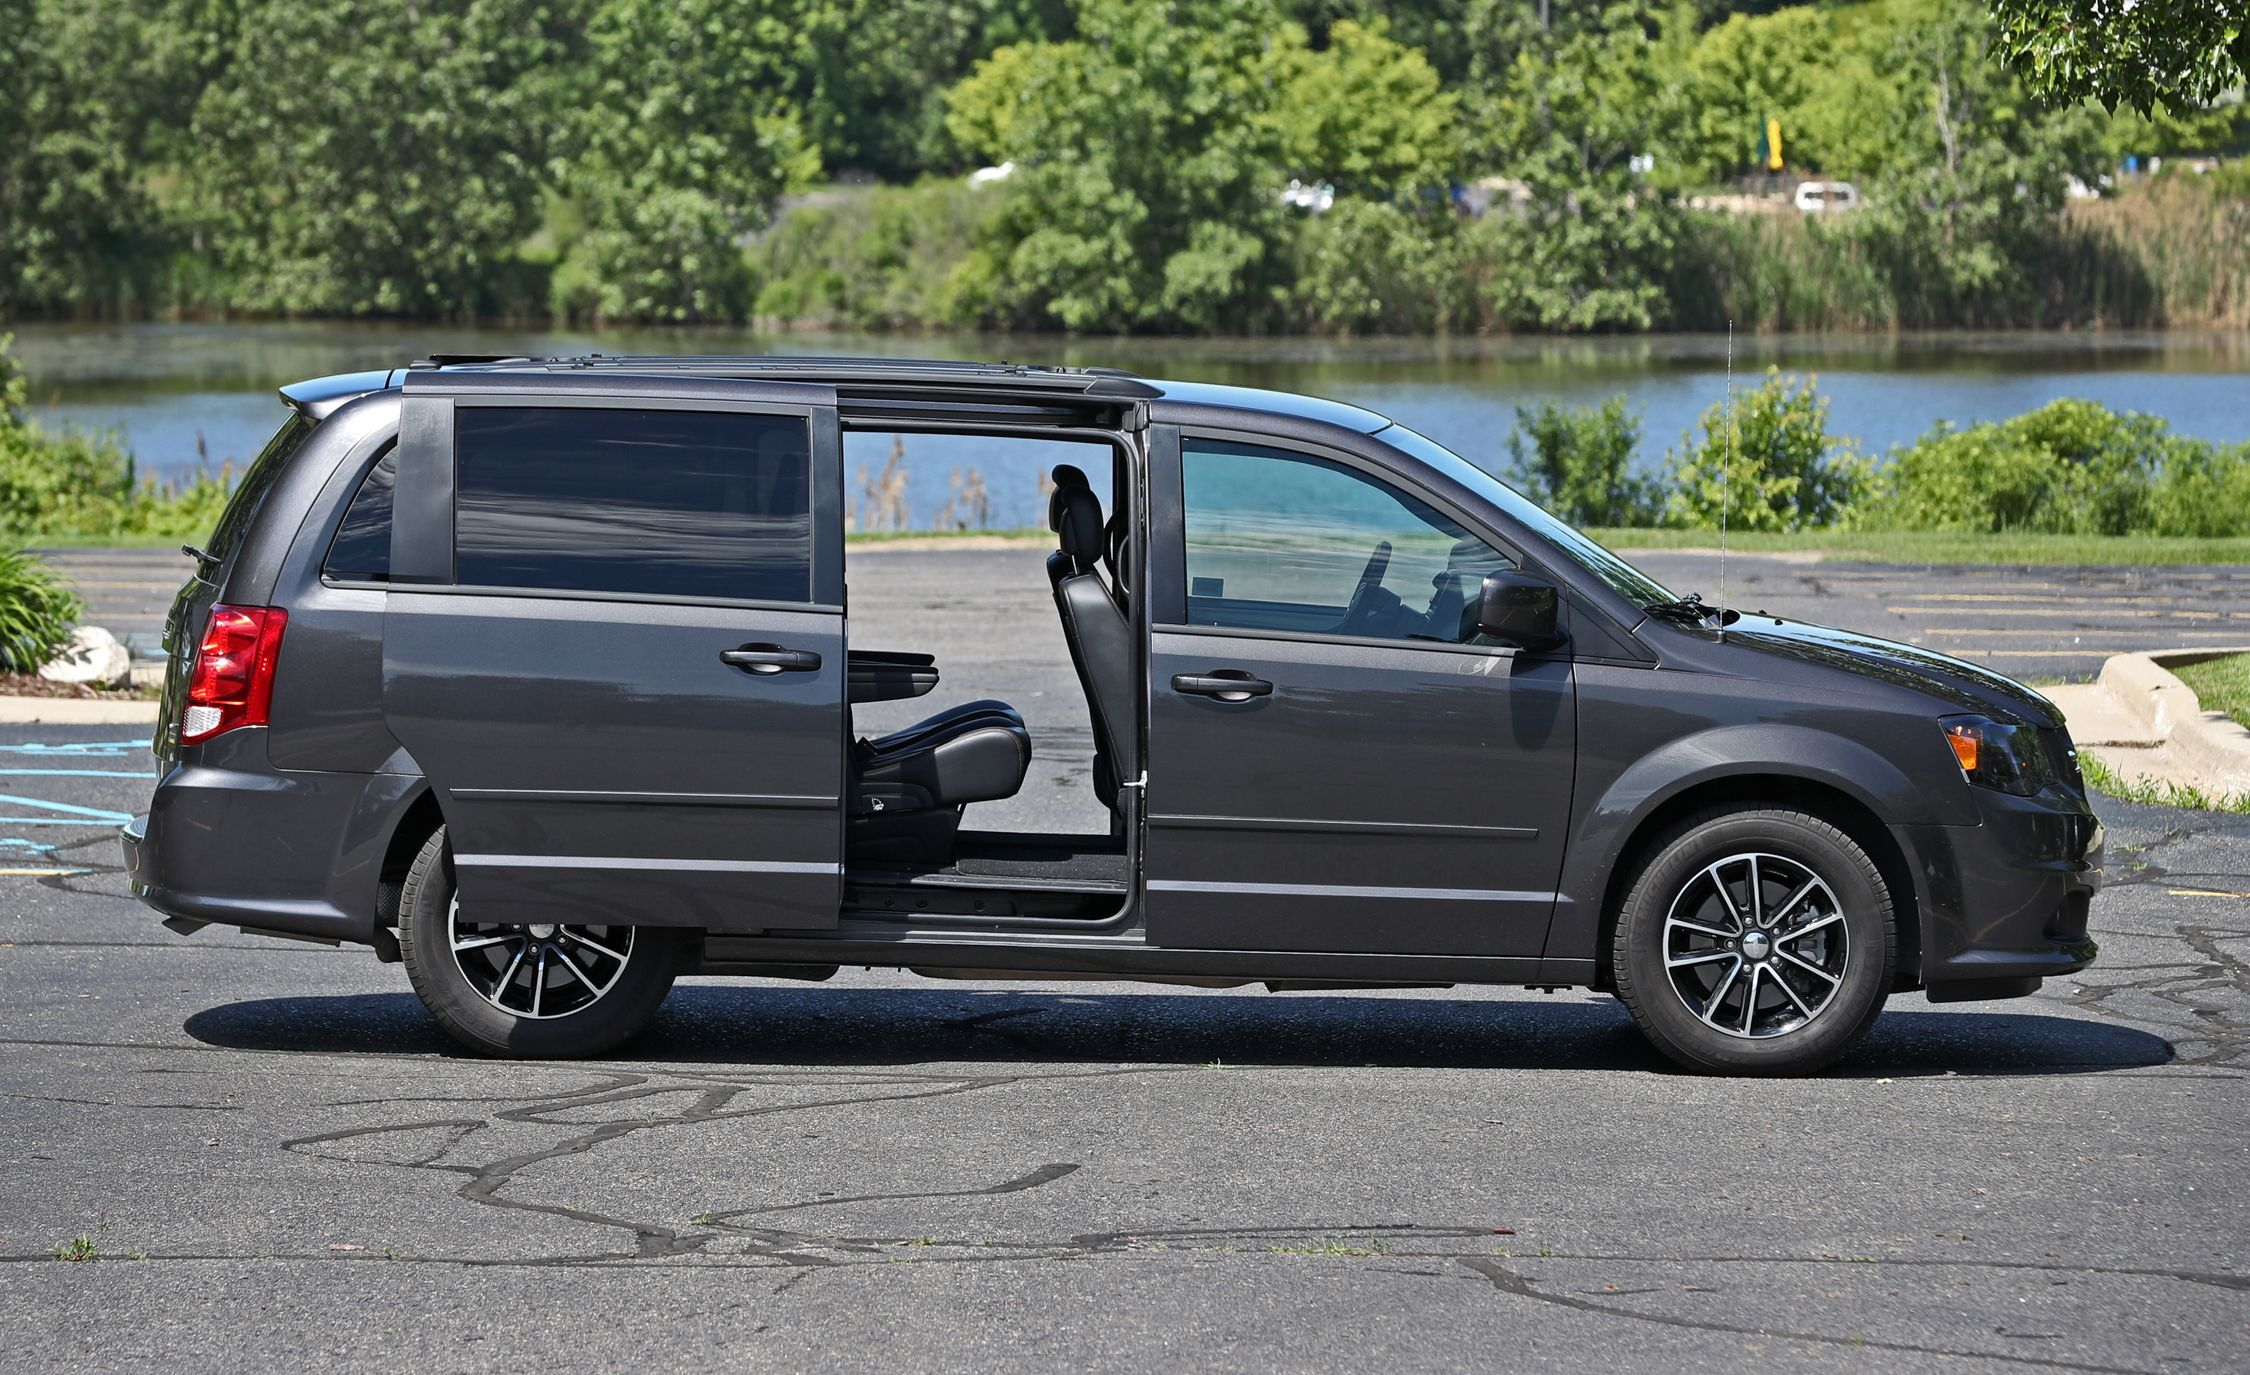 2018 dodge grand caravan interior review car and driver rh caranddriver com dodge grand caravan 2016 owners manual dodge grand caravan 2014 owners manual